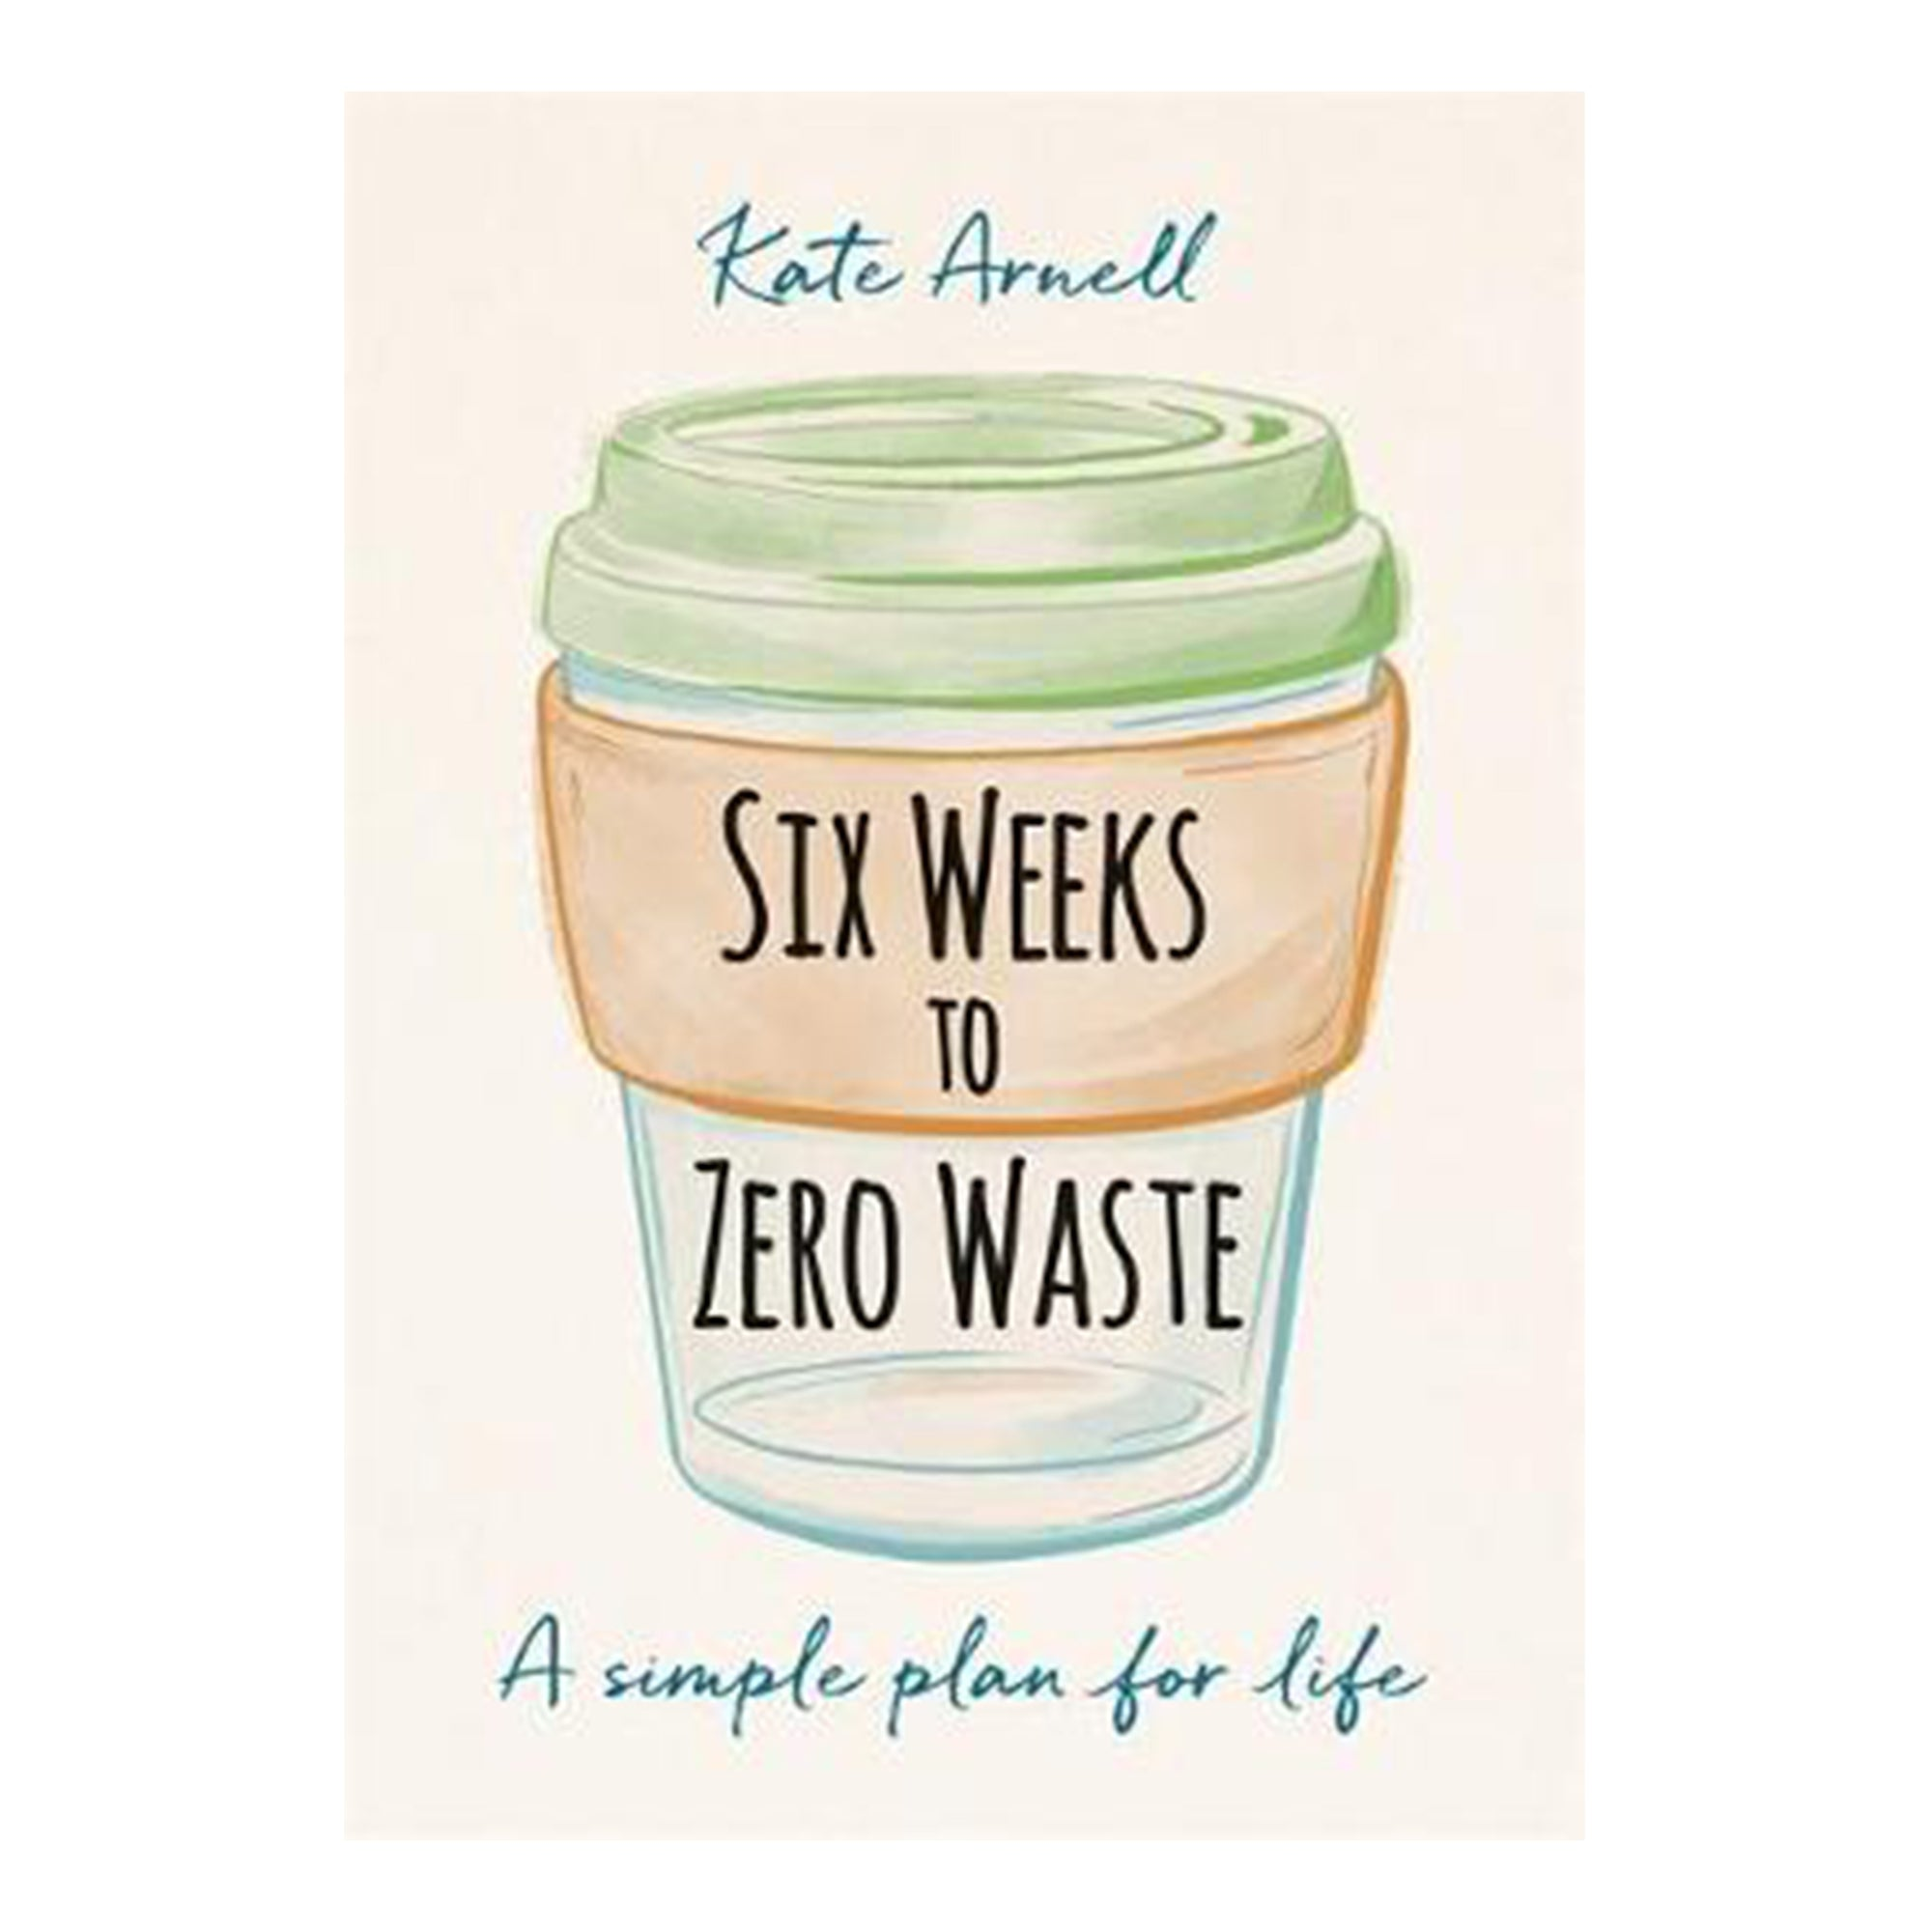 Six Weeks to Zero Waste by Kate Arnell - Scandi Minimal